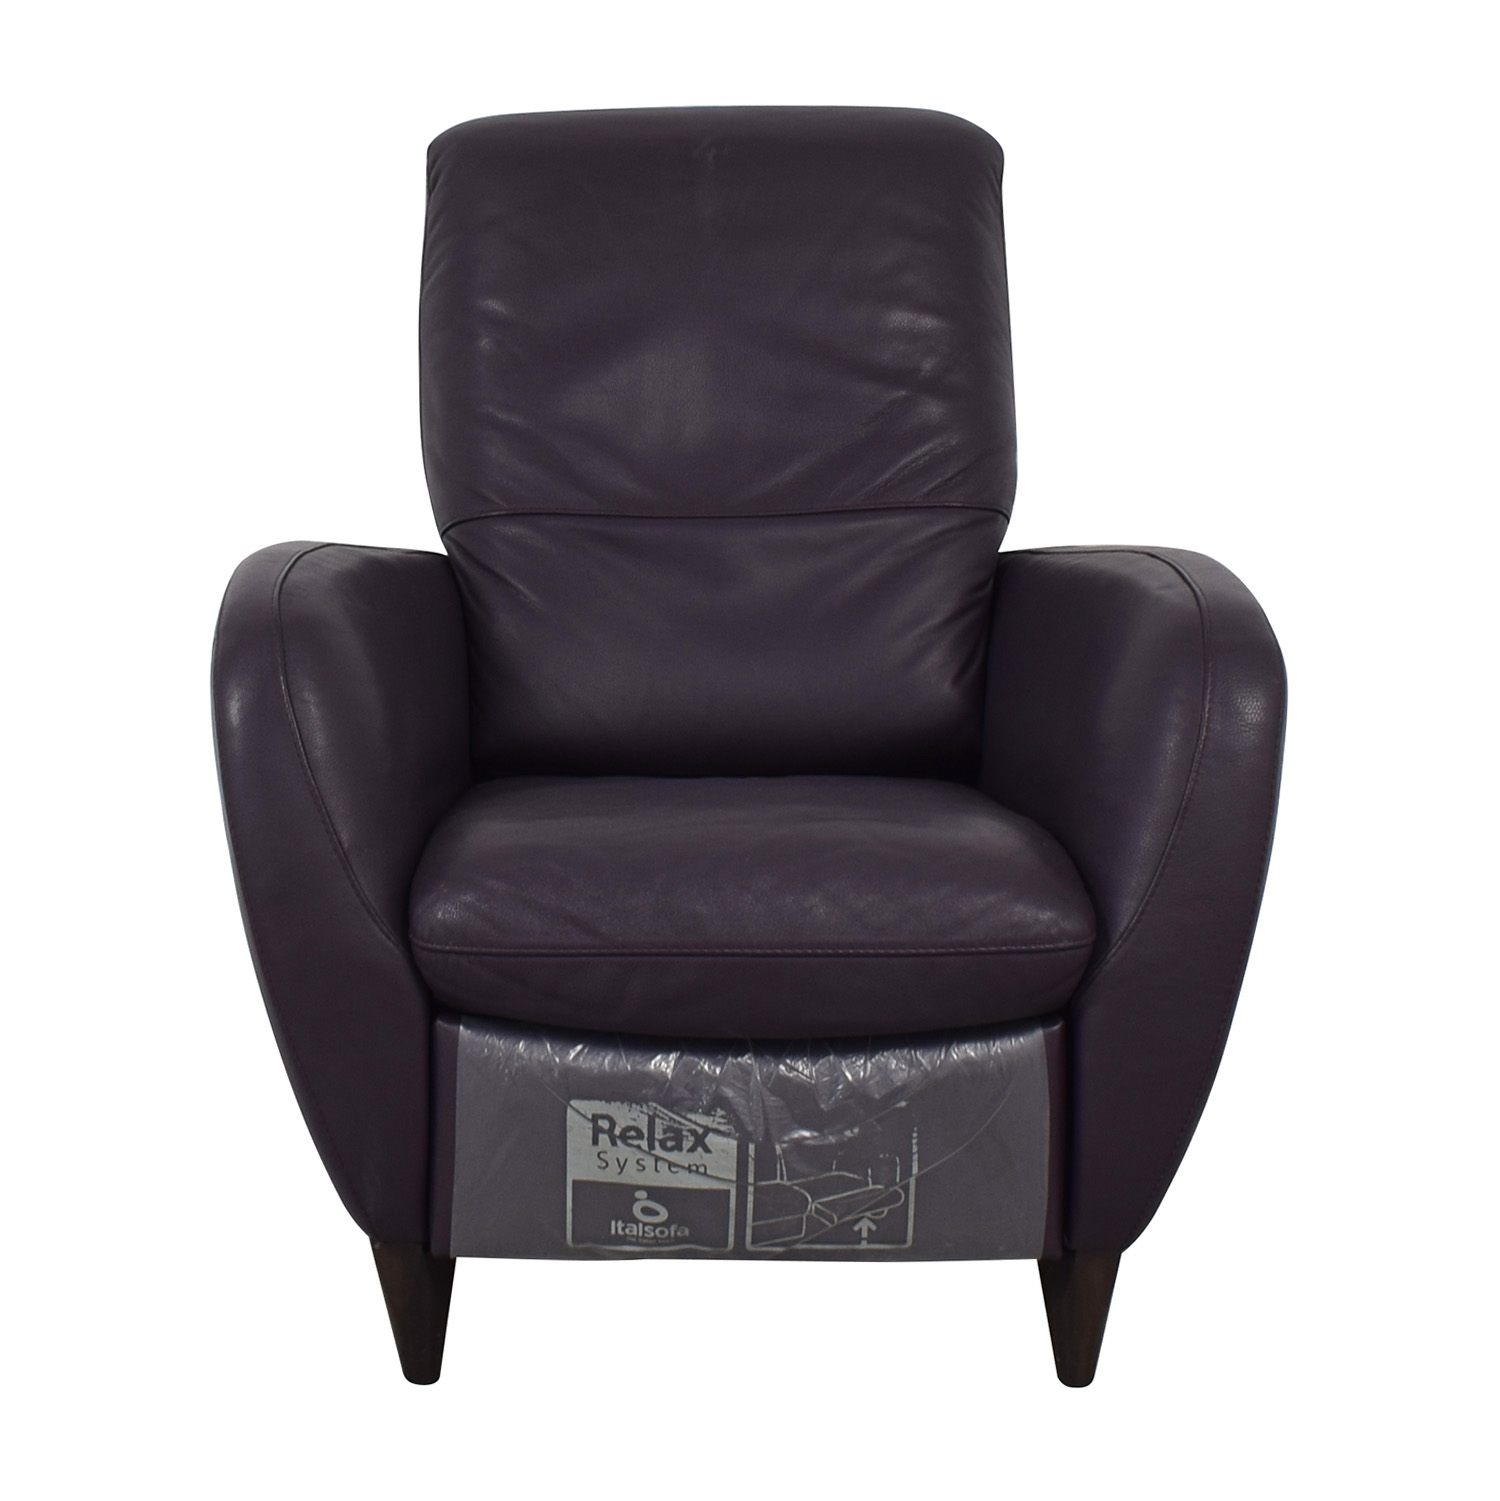 Natuzzi Natuzzi Italsofa Purple Recliner coupon